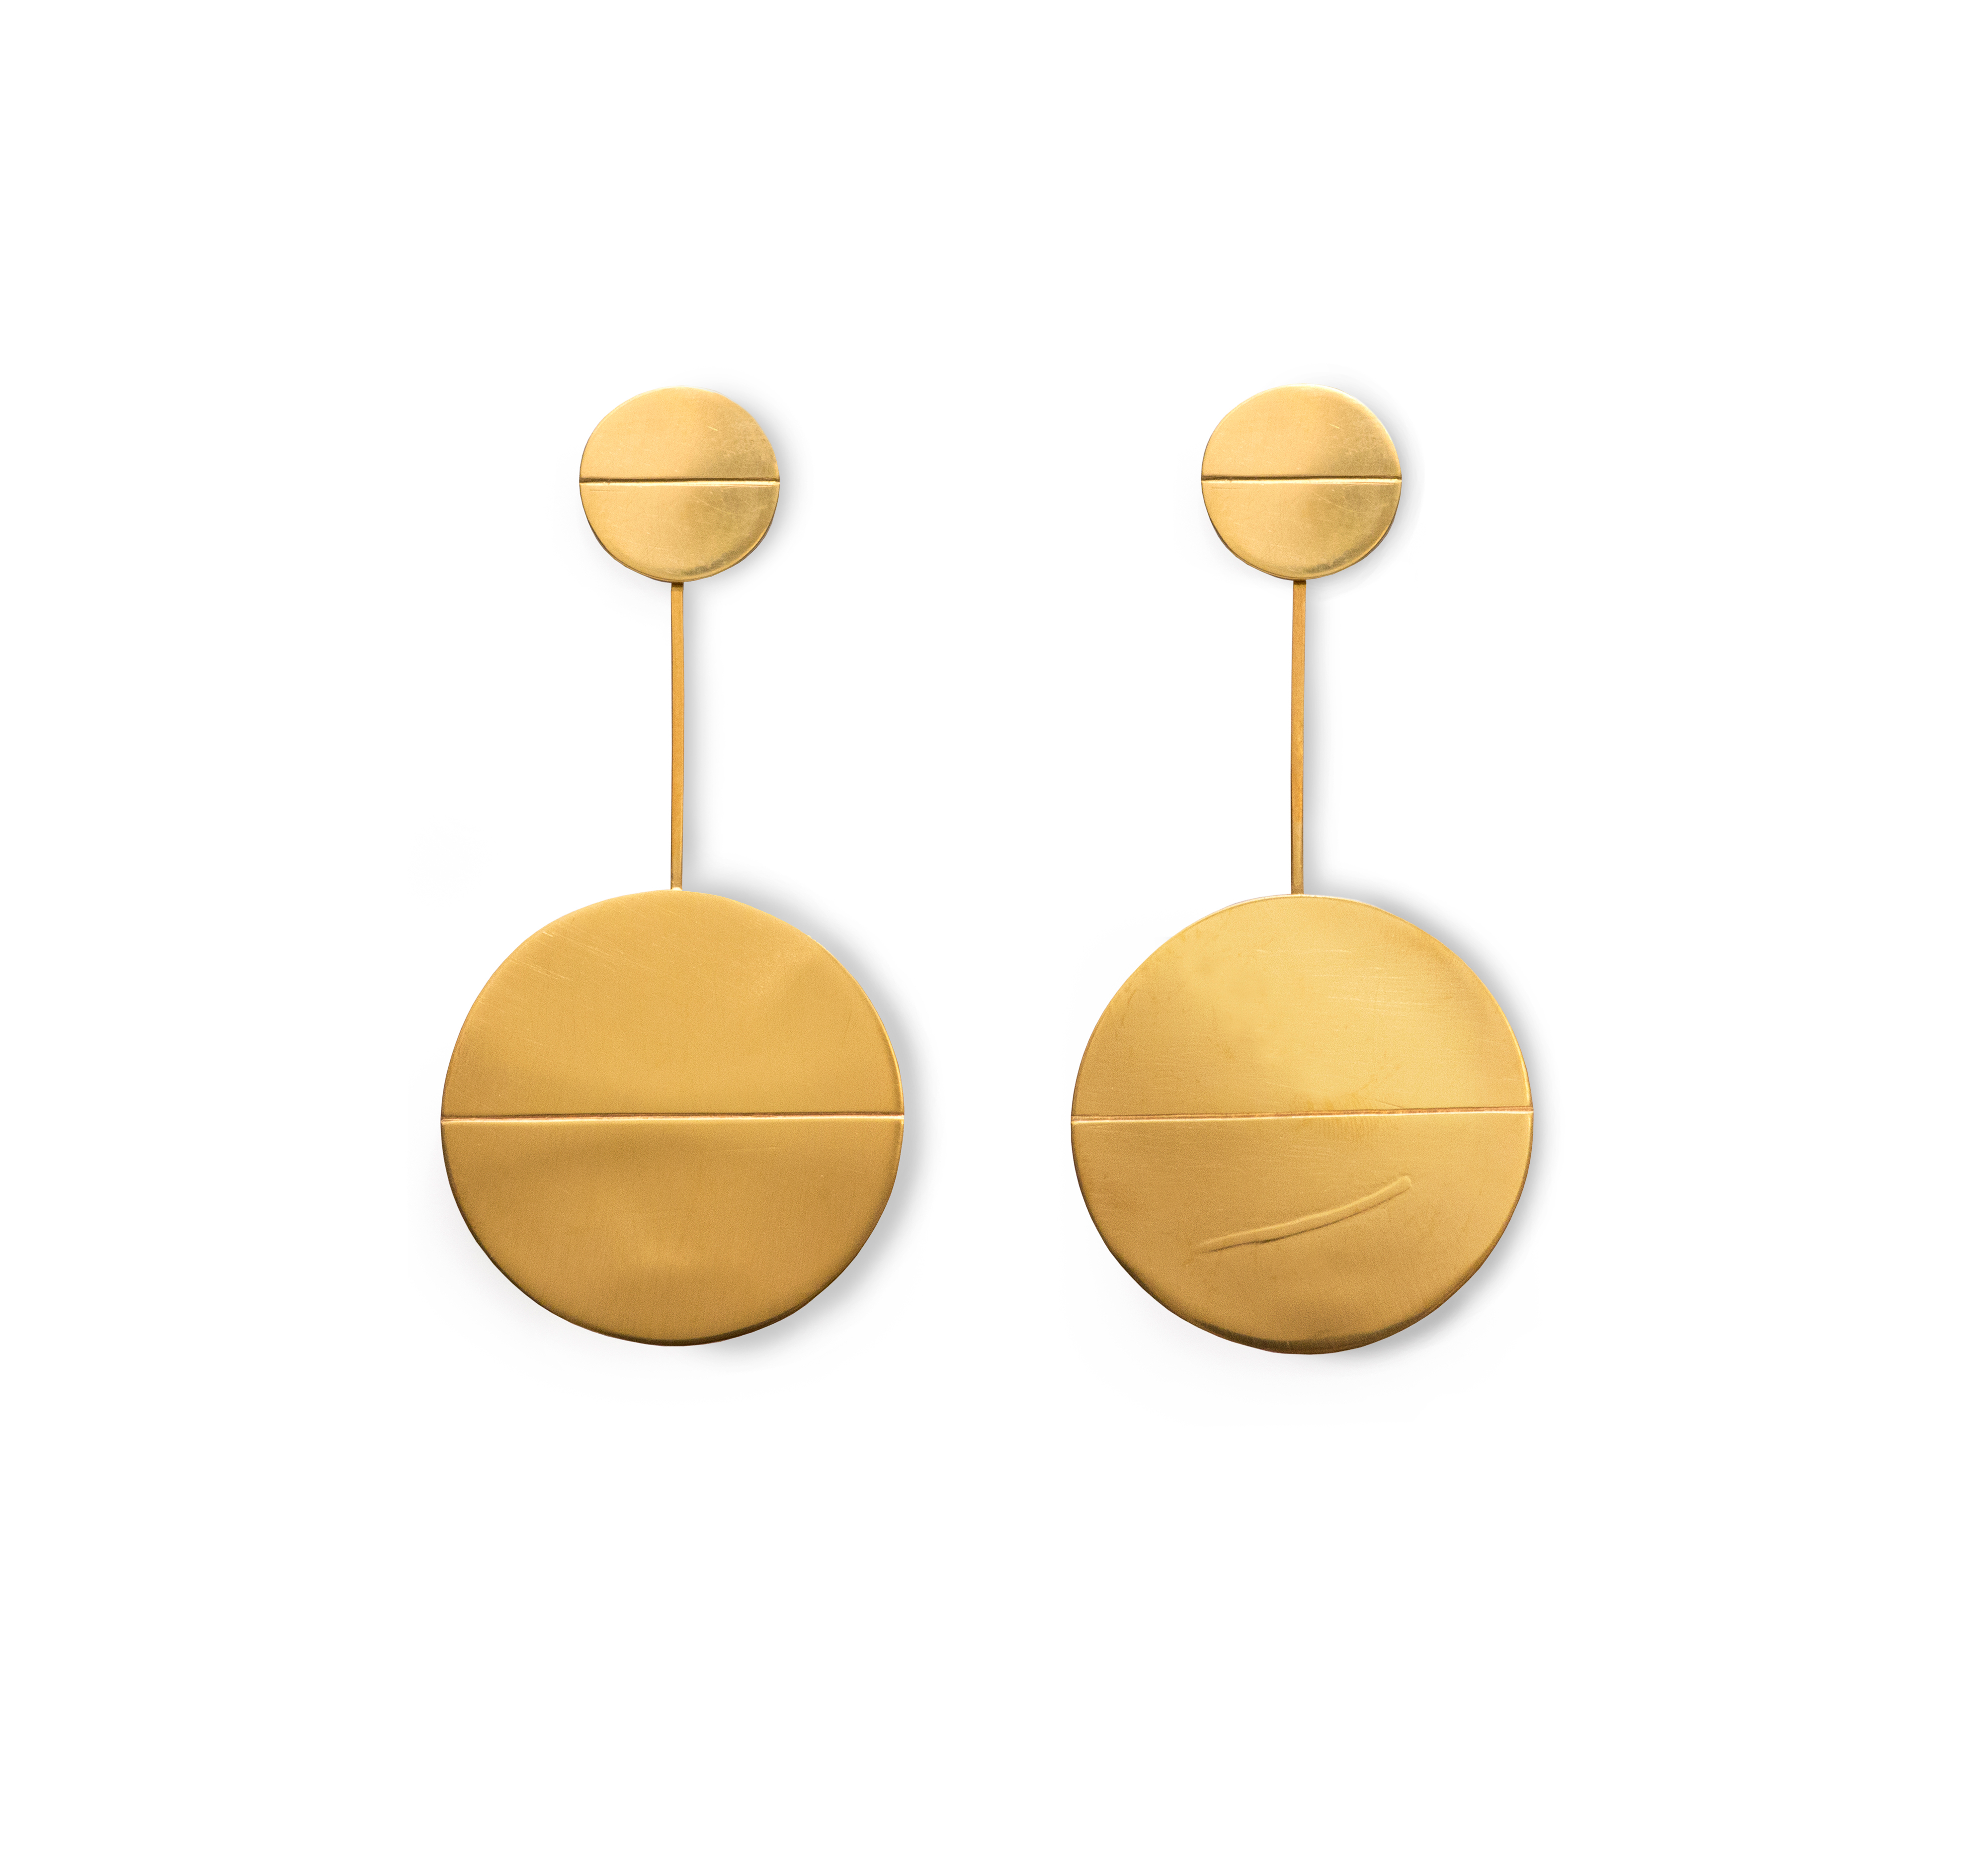 24ct Gold Plated Silver Pendulum Earrings